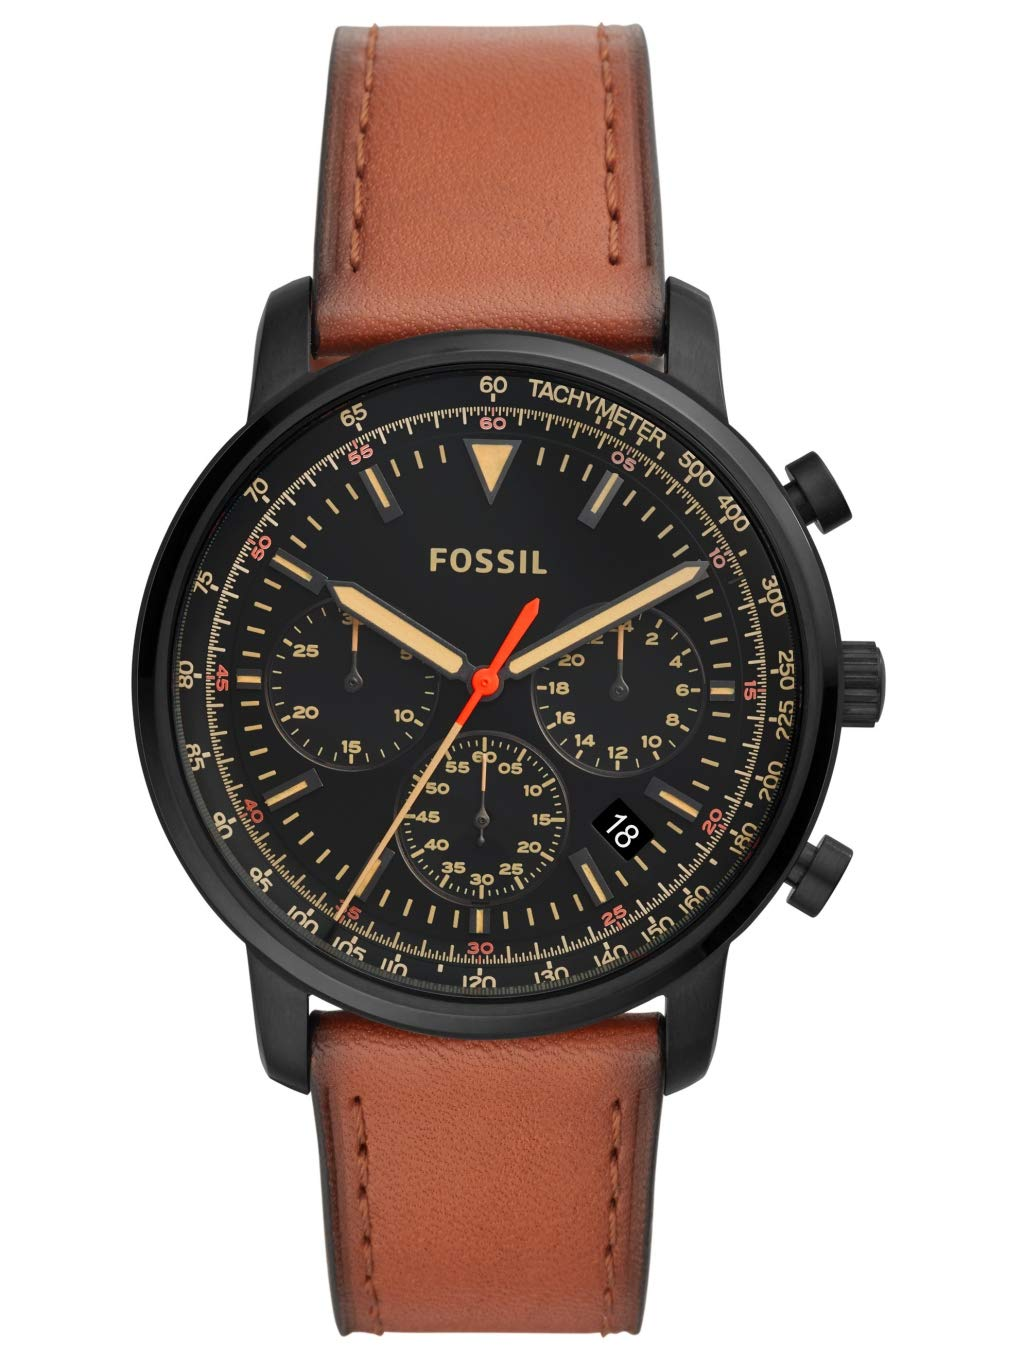 Fossil Mens Chronograph Quartz Watch with Leather Strap FS5501